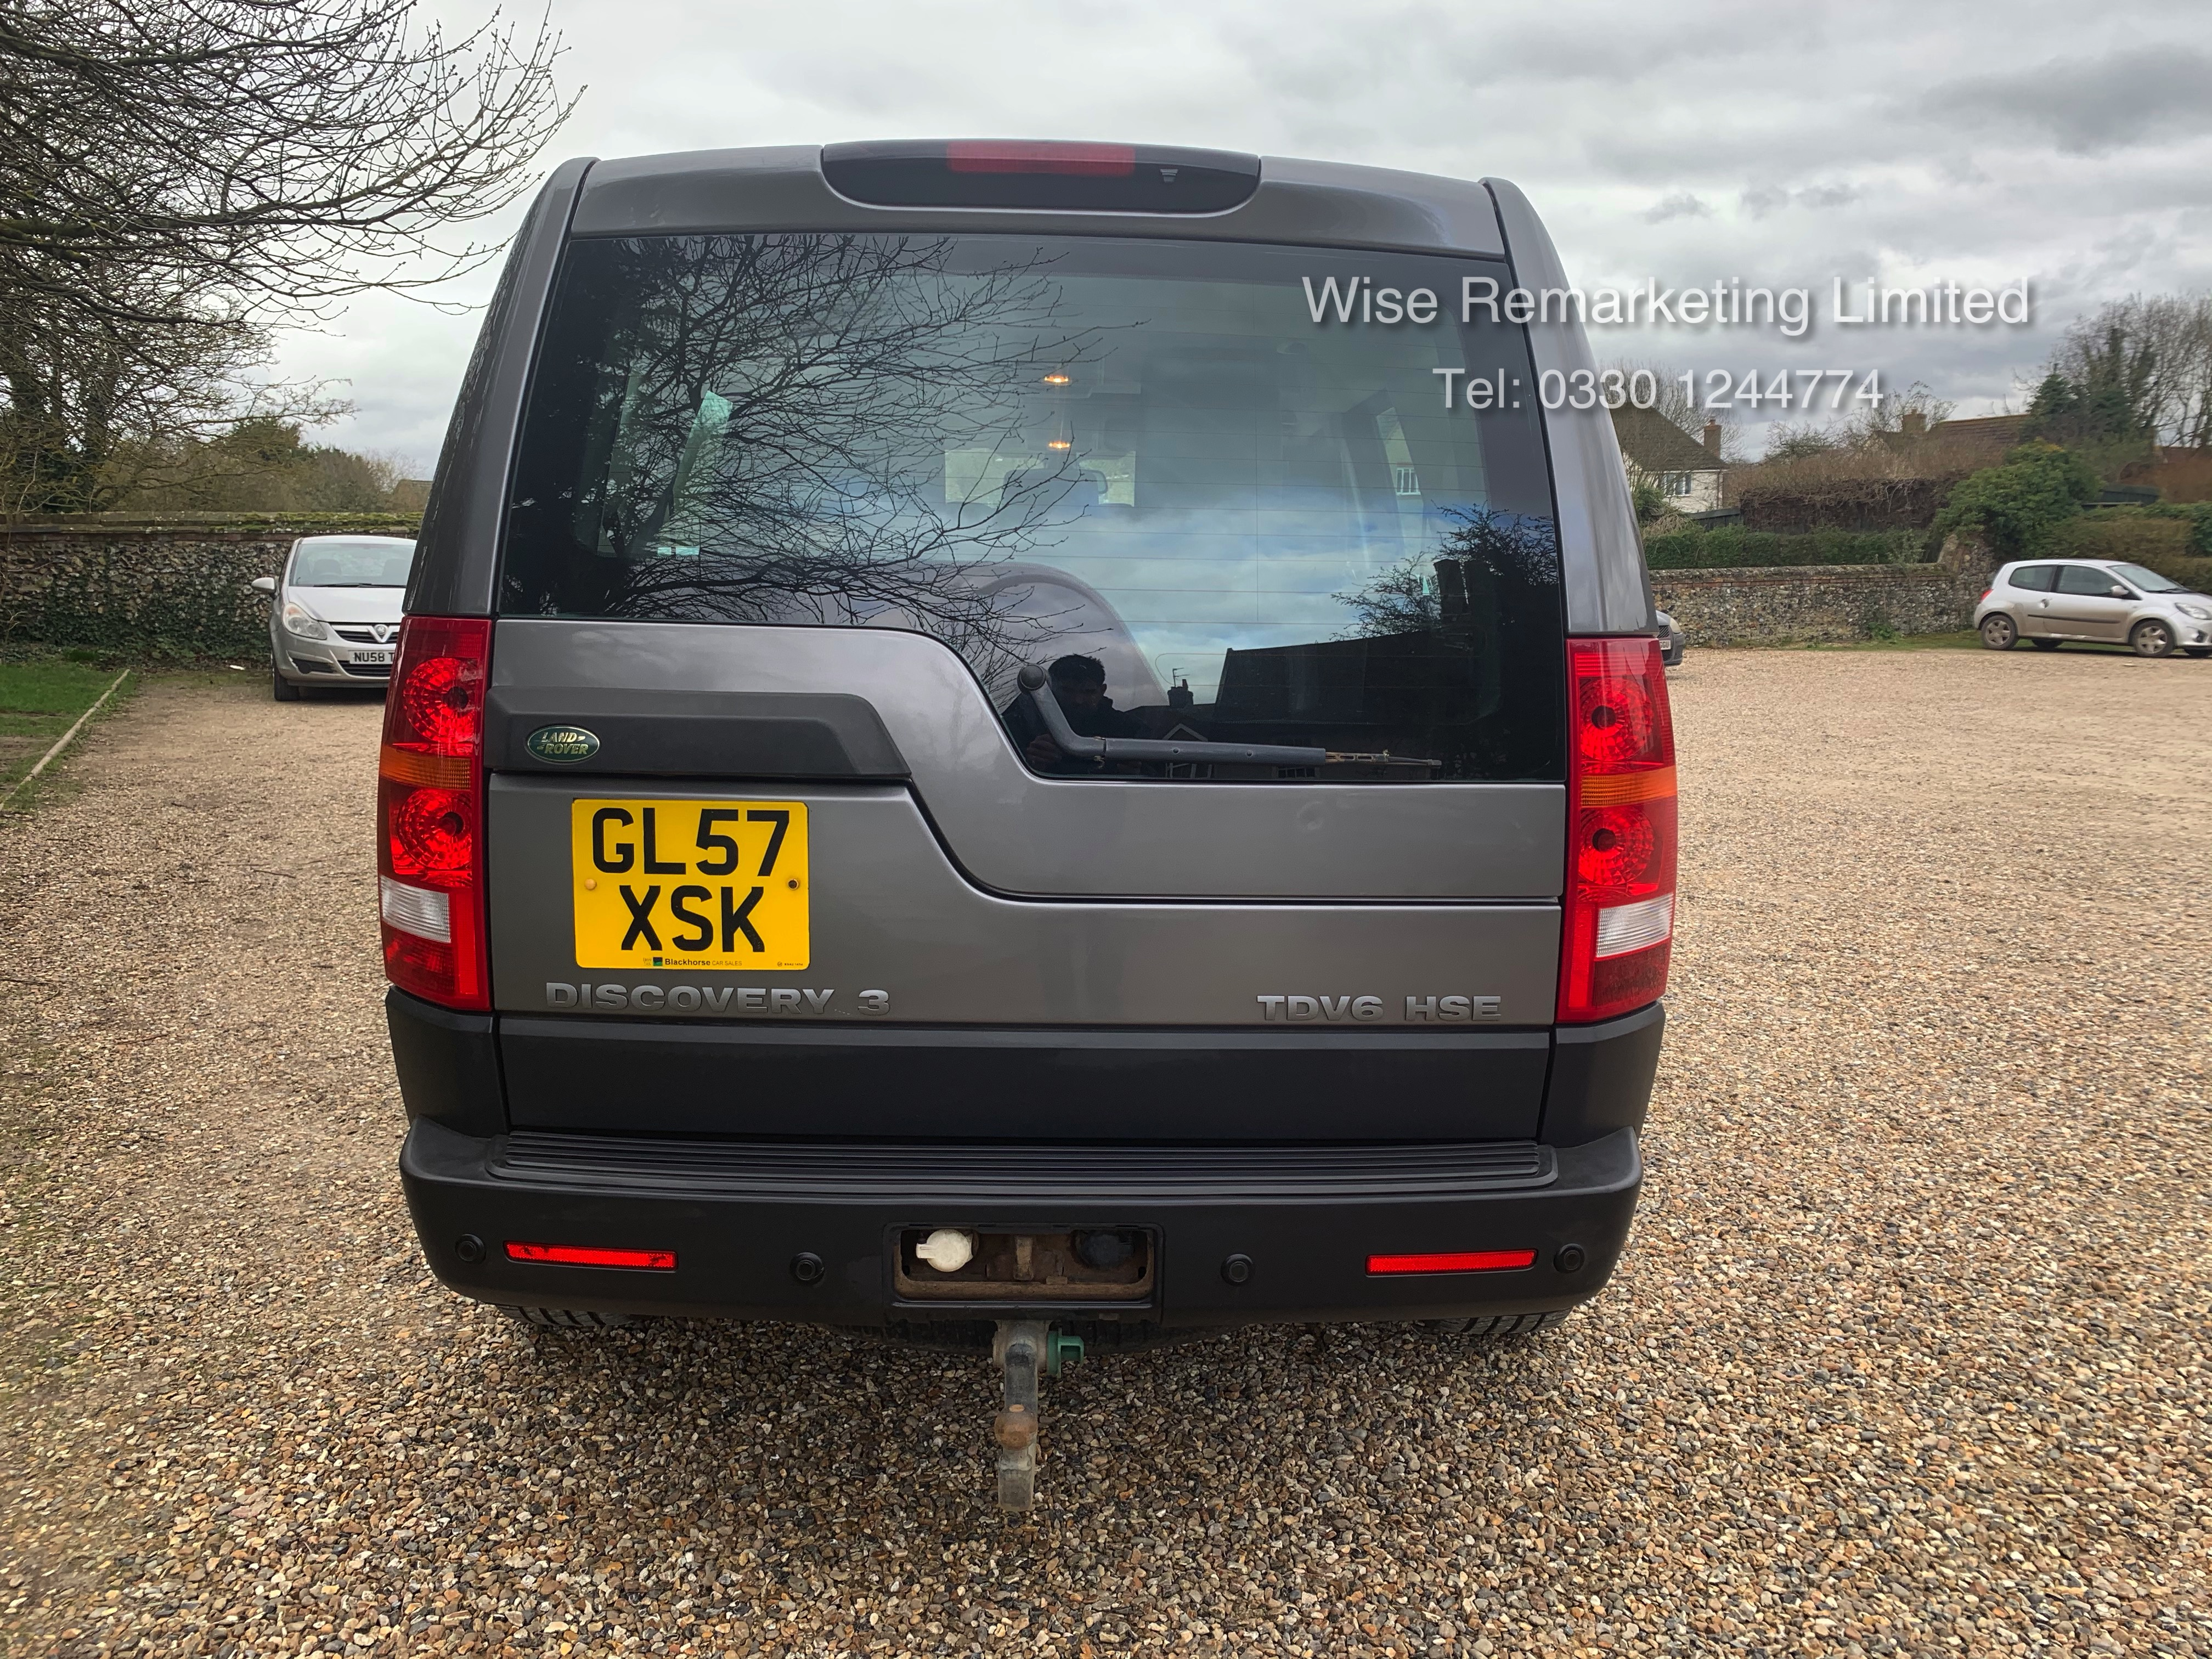 Land Rover Discovery 2.7 TDV6 HSE - Automatic - 2008 Reg - Full Leather - 7 Seater - Sat Nav - - Image 8 of 31